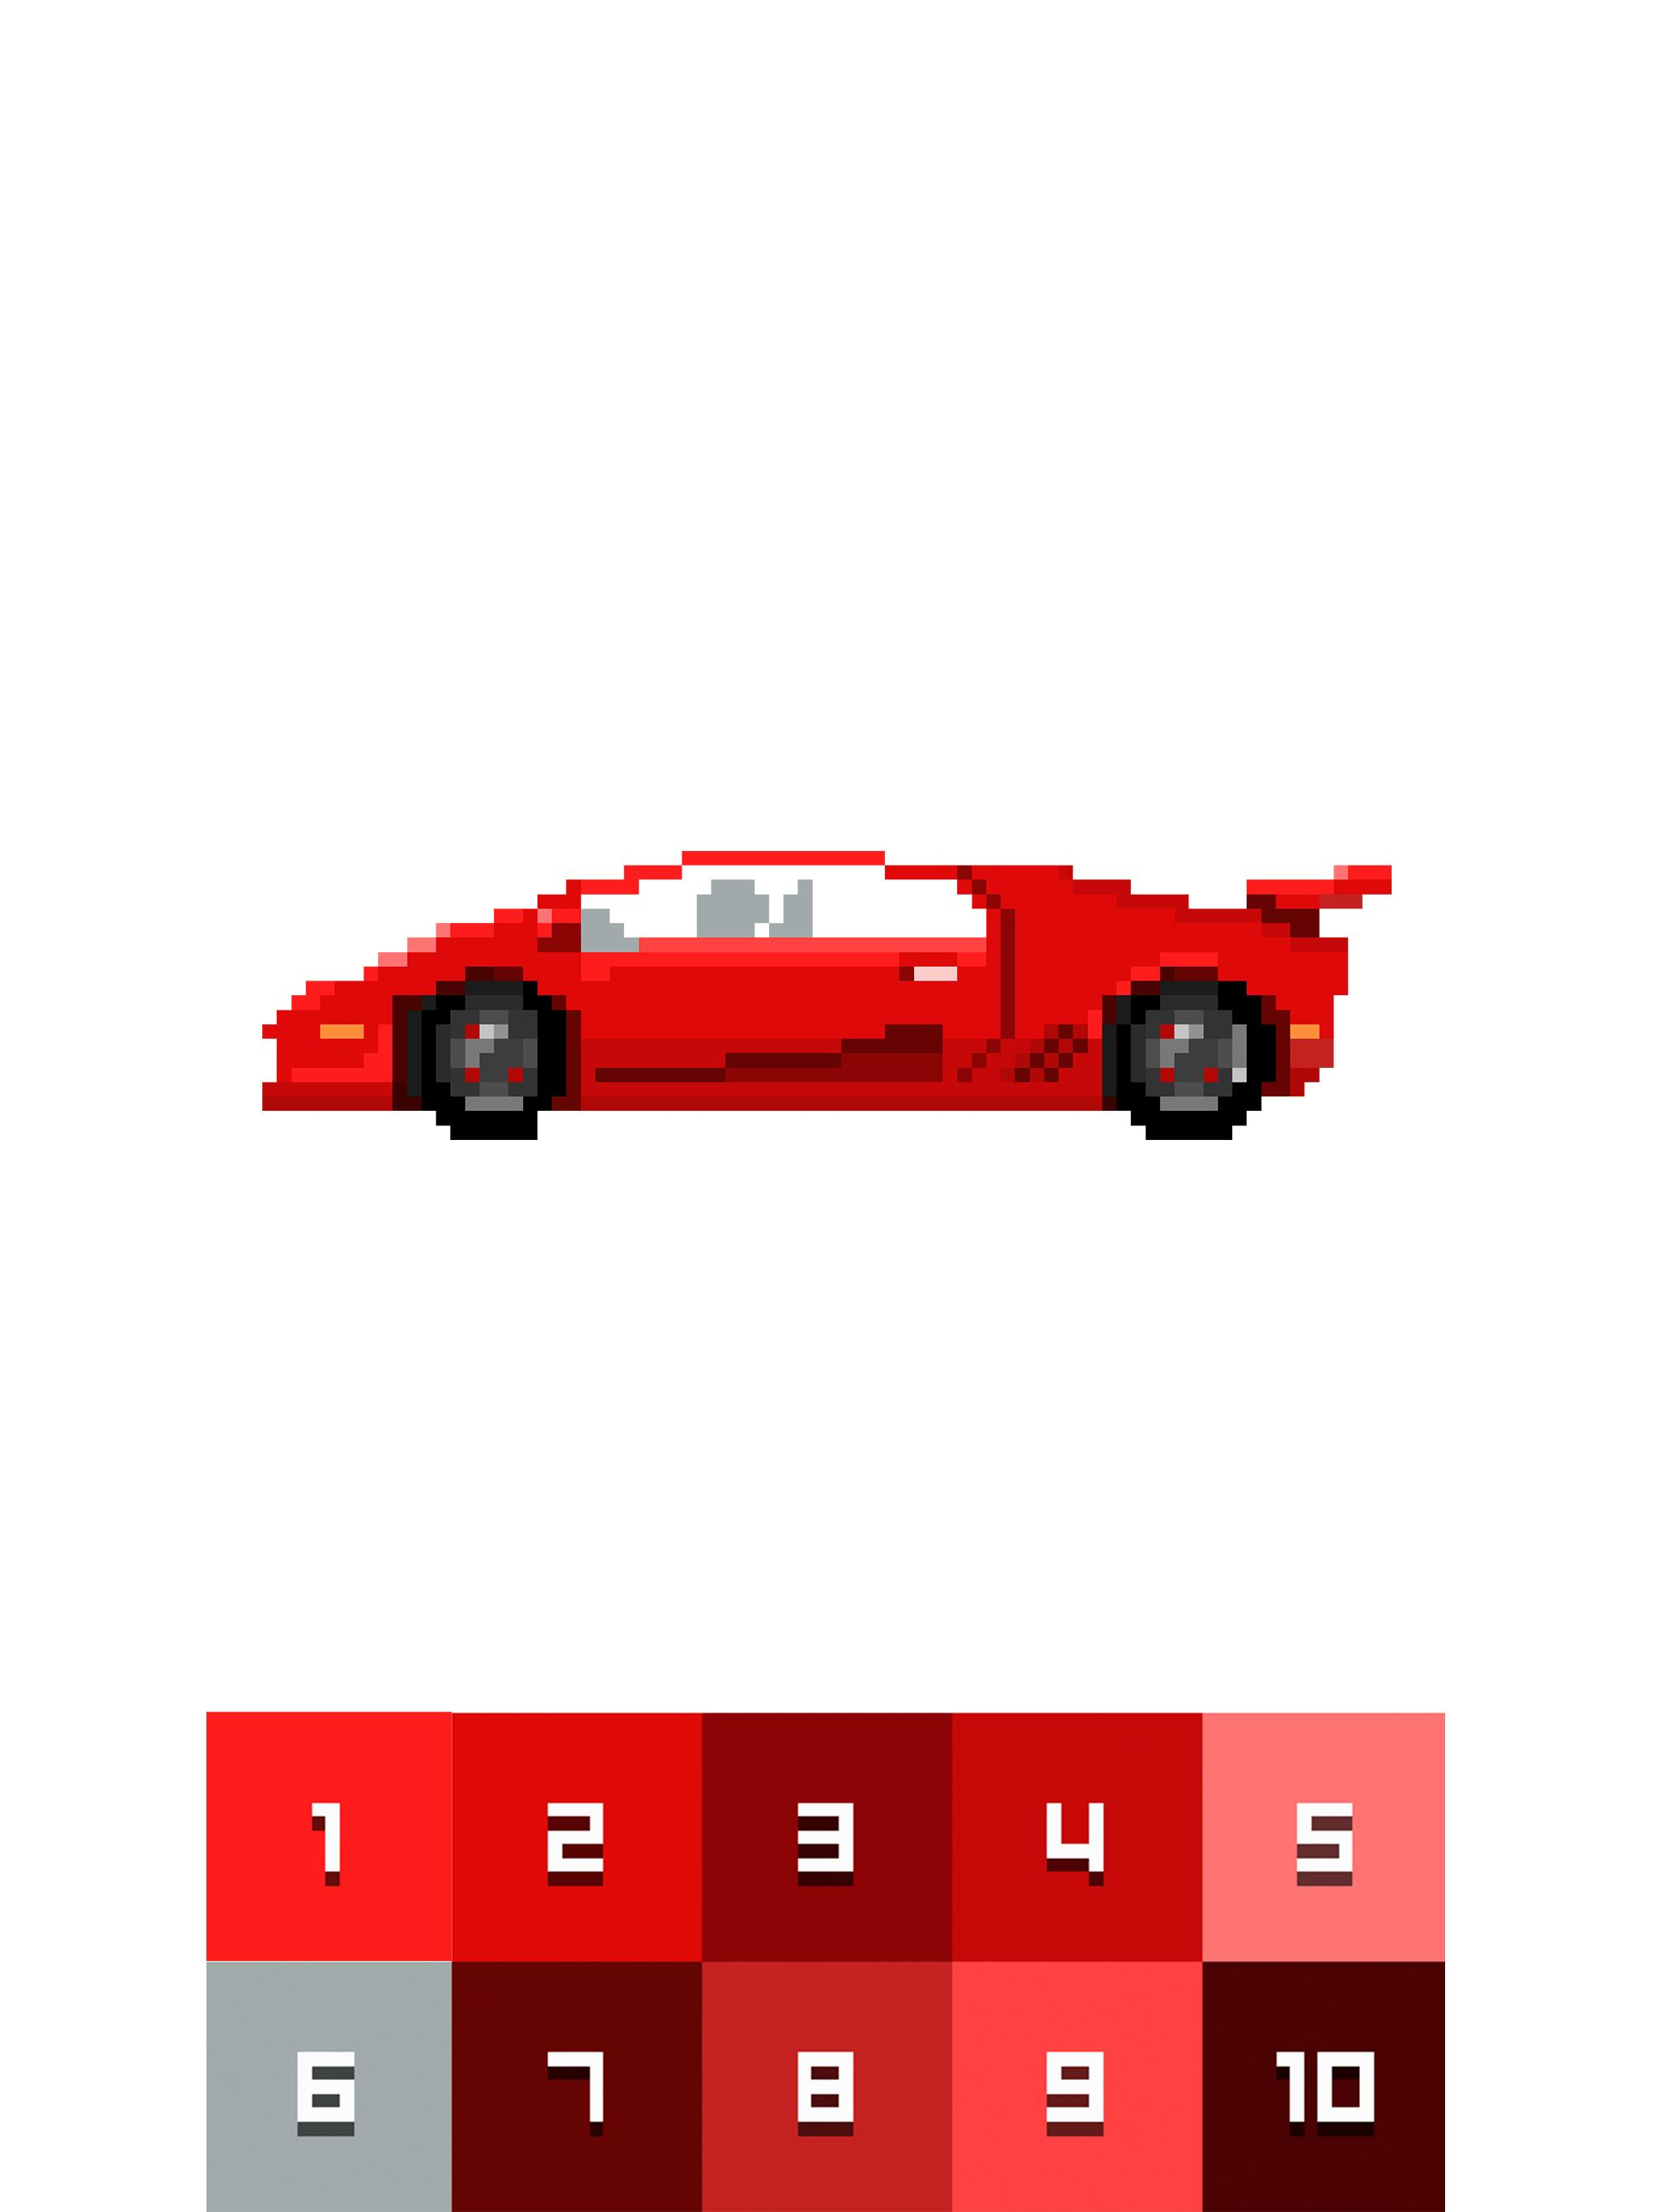 Color Pixel Art Classic For Android Apk Download